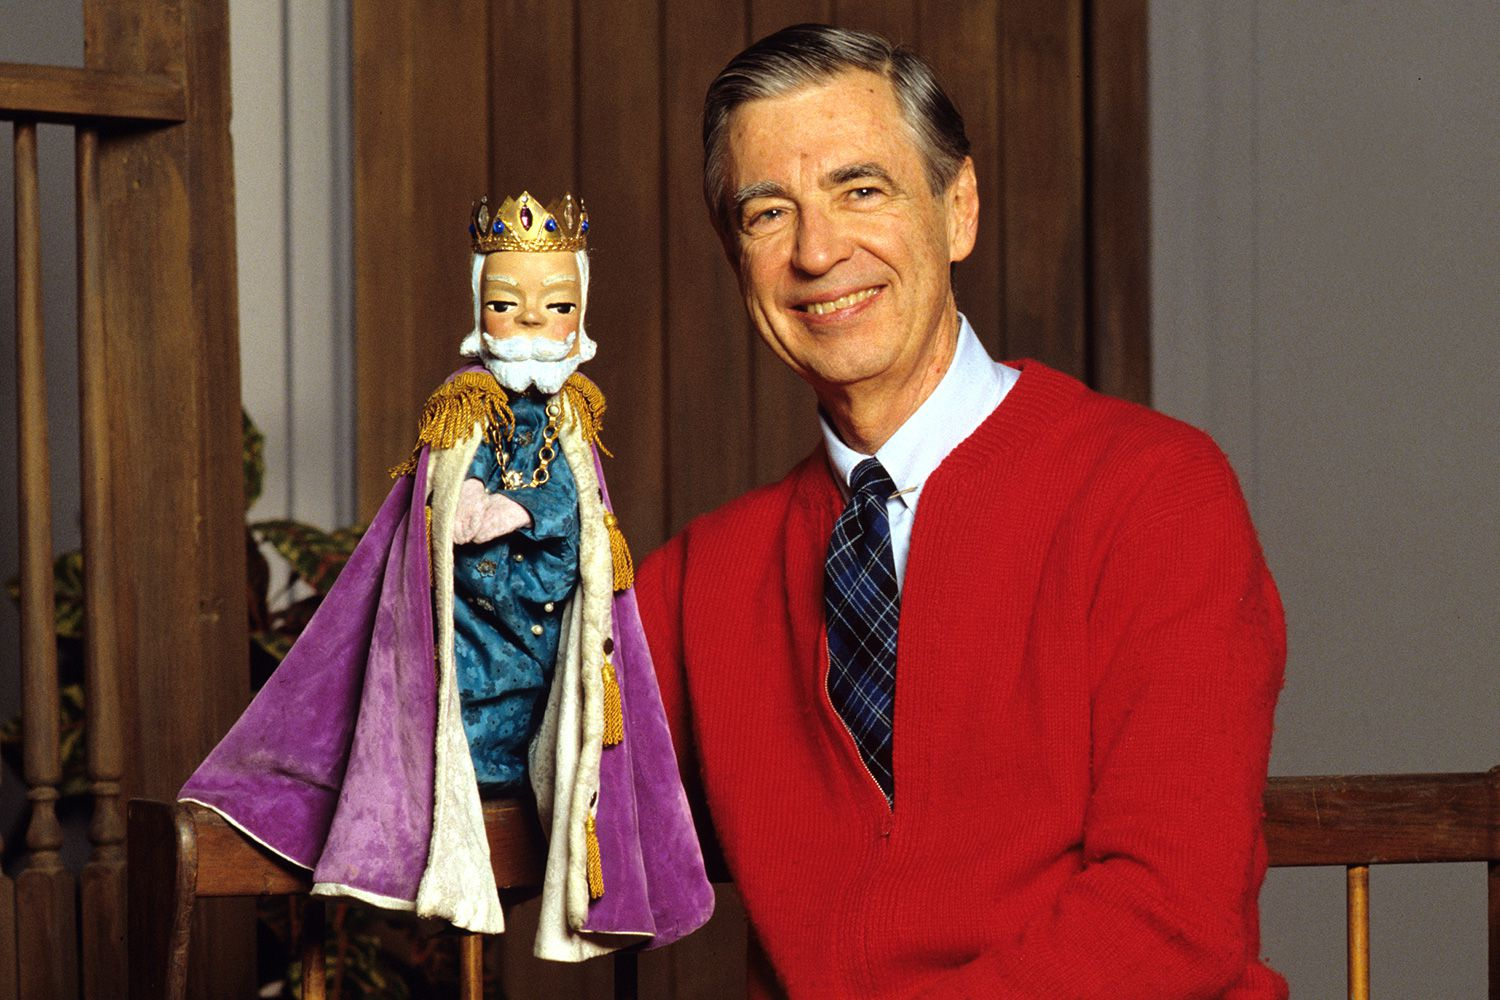 Mr Rogers A Navy Seal Or Marine Sniper